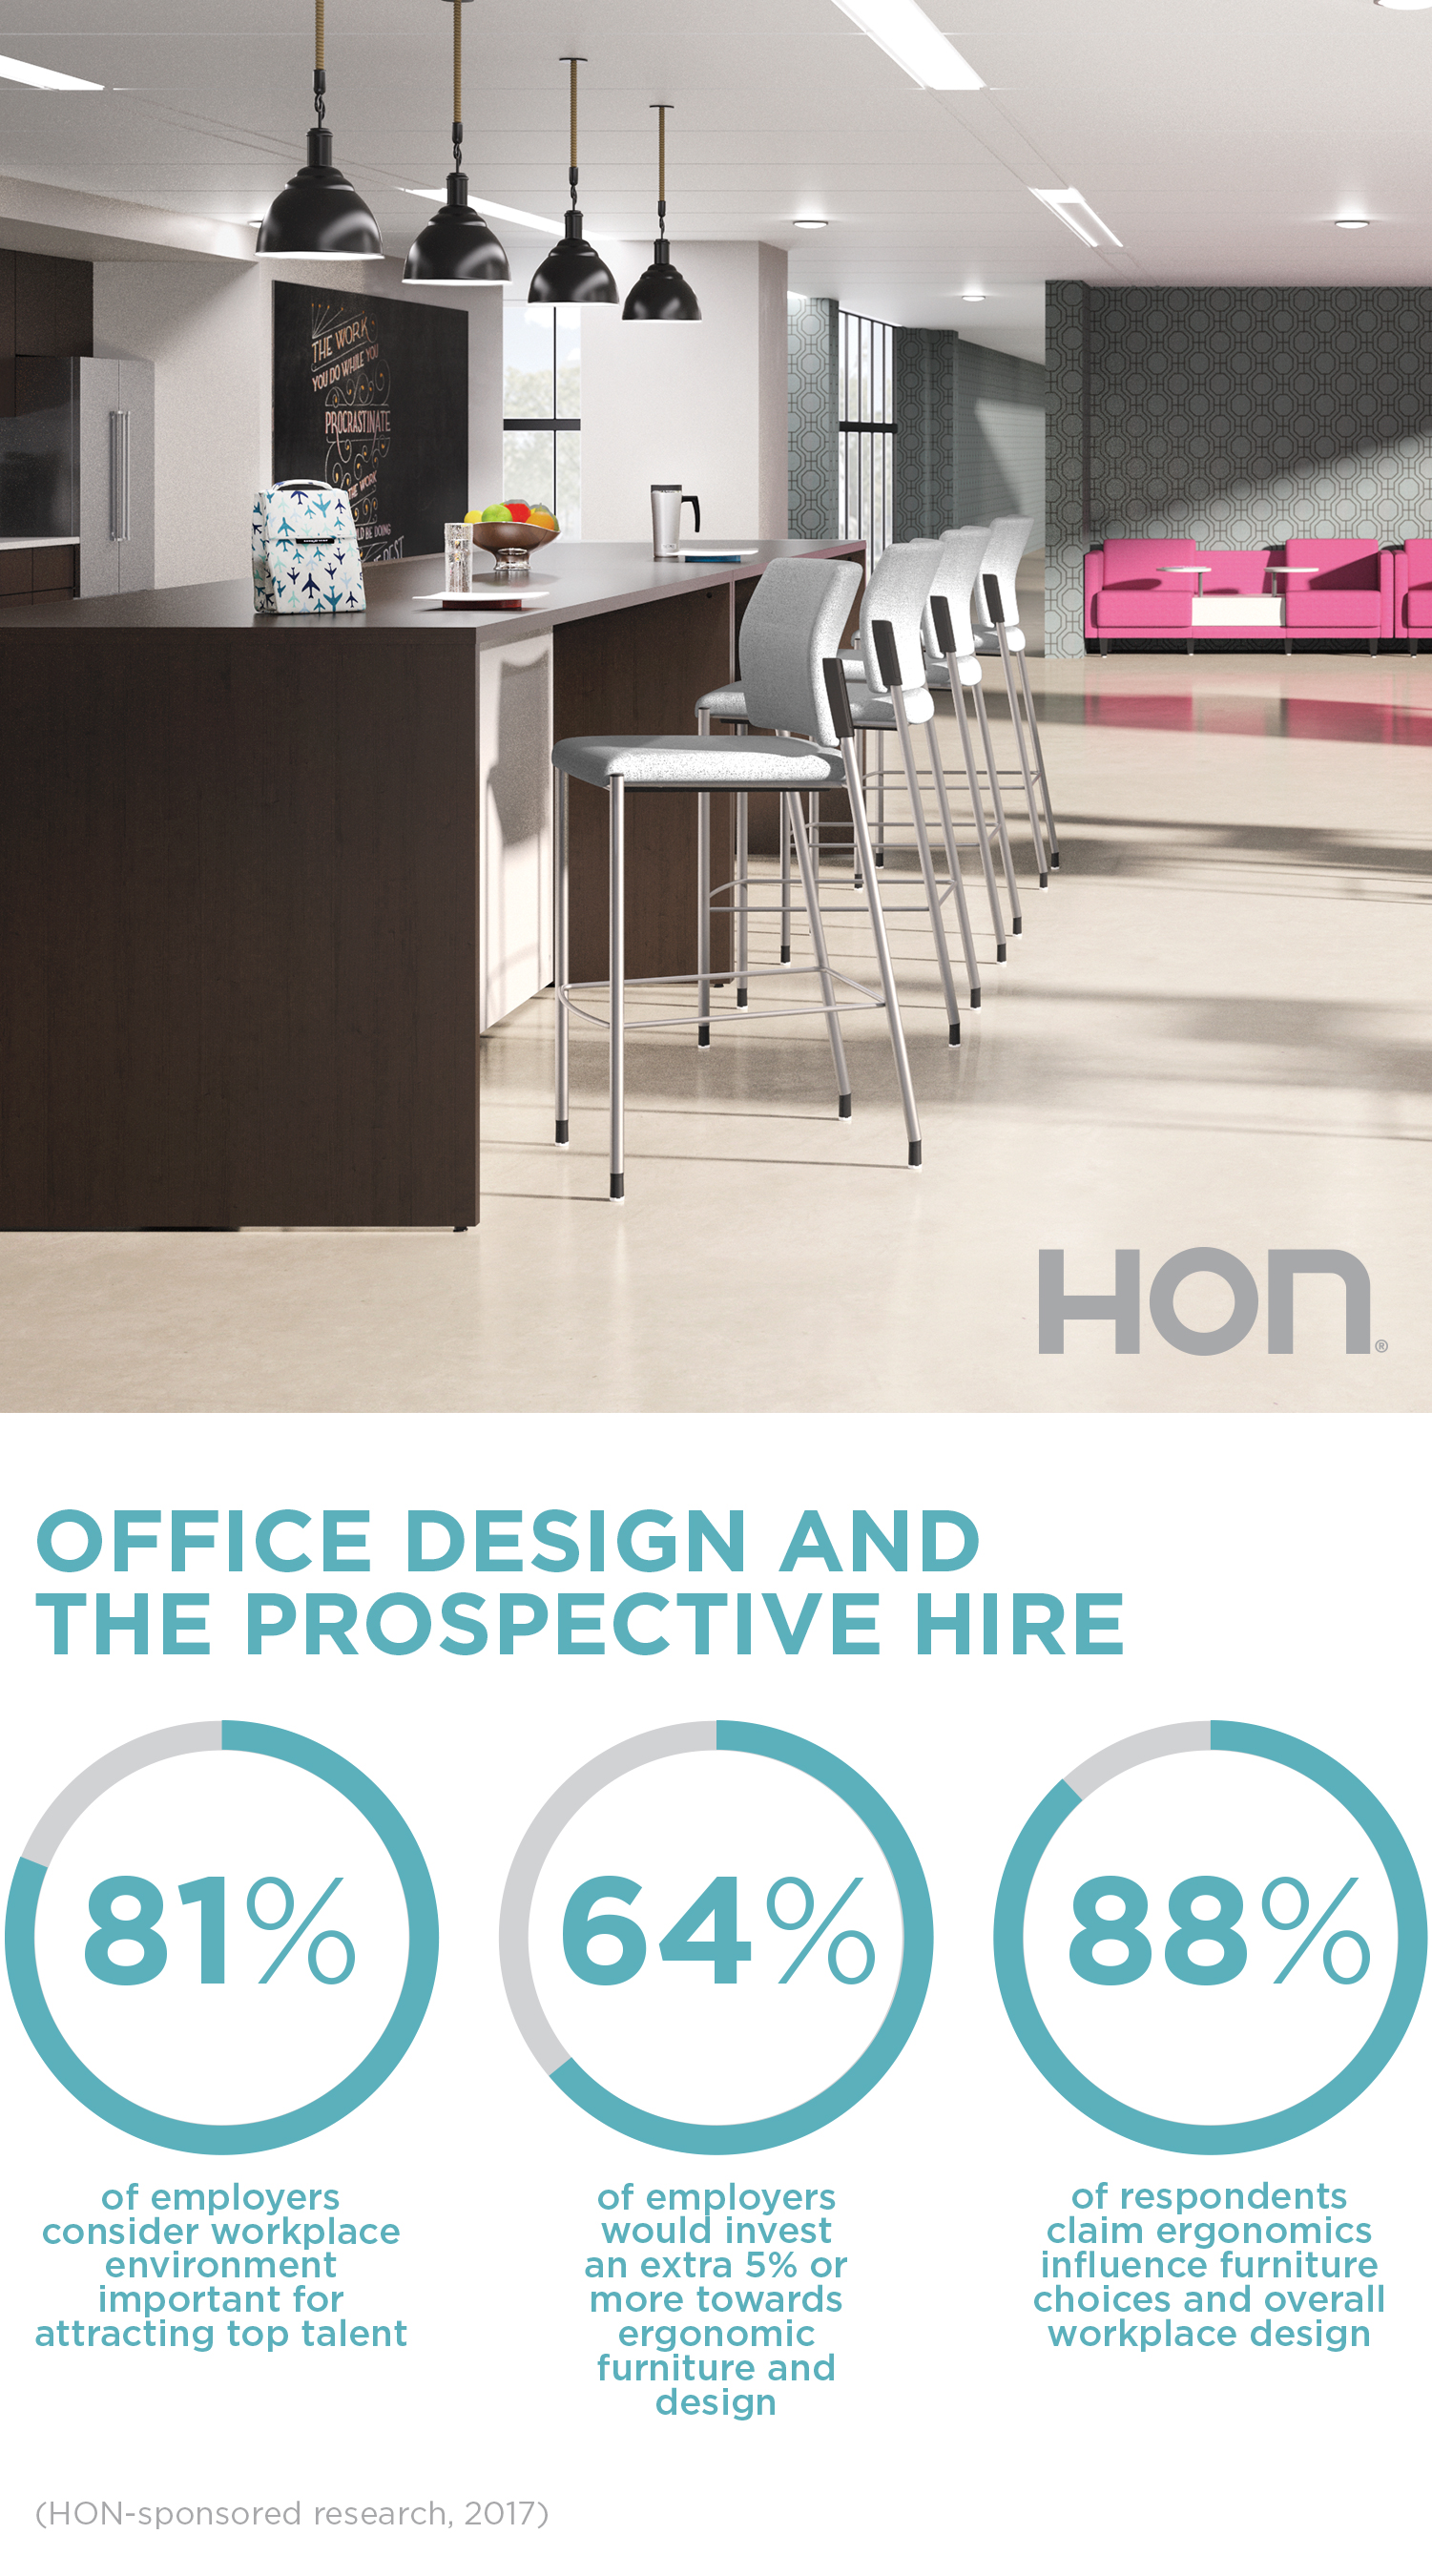 Office Design and the Prospective Hire